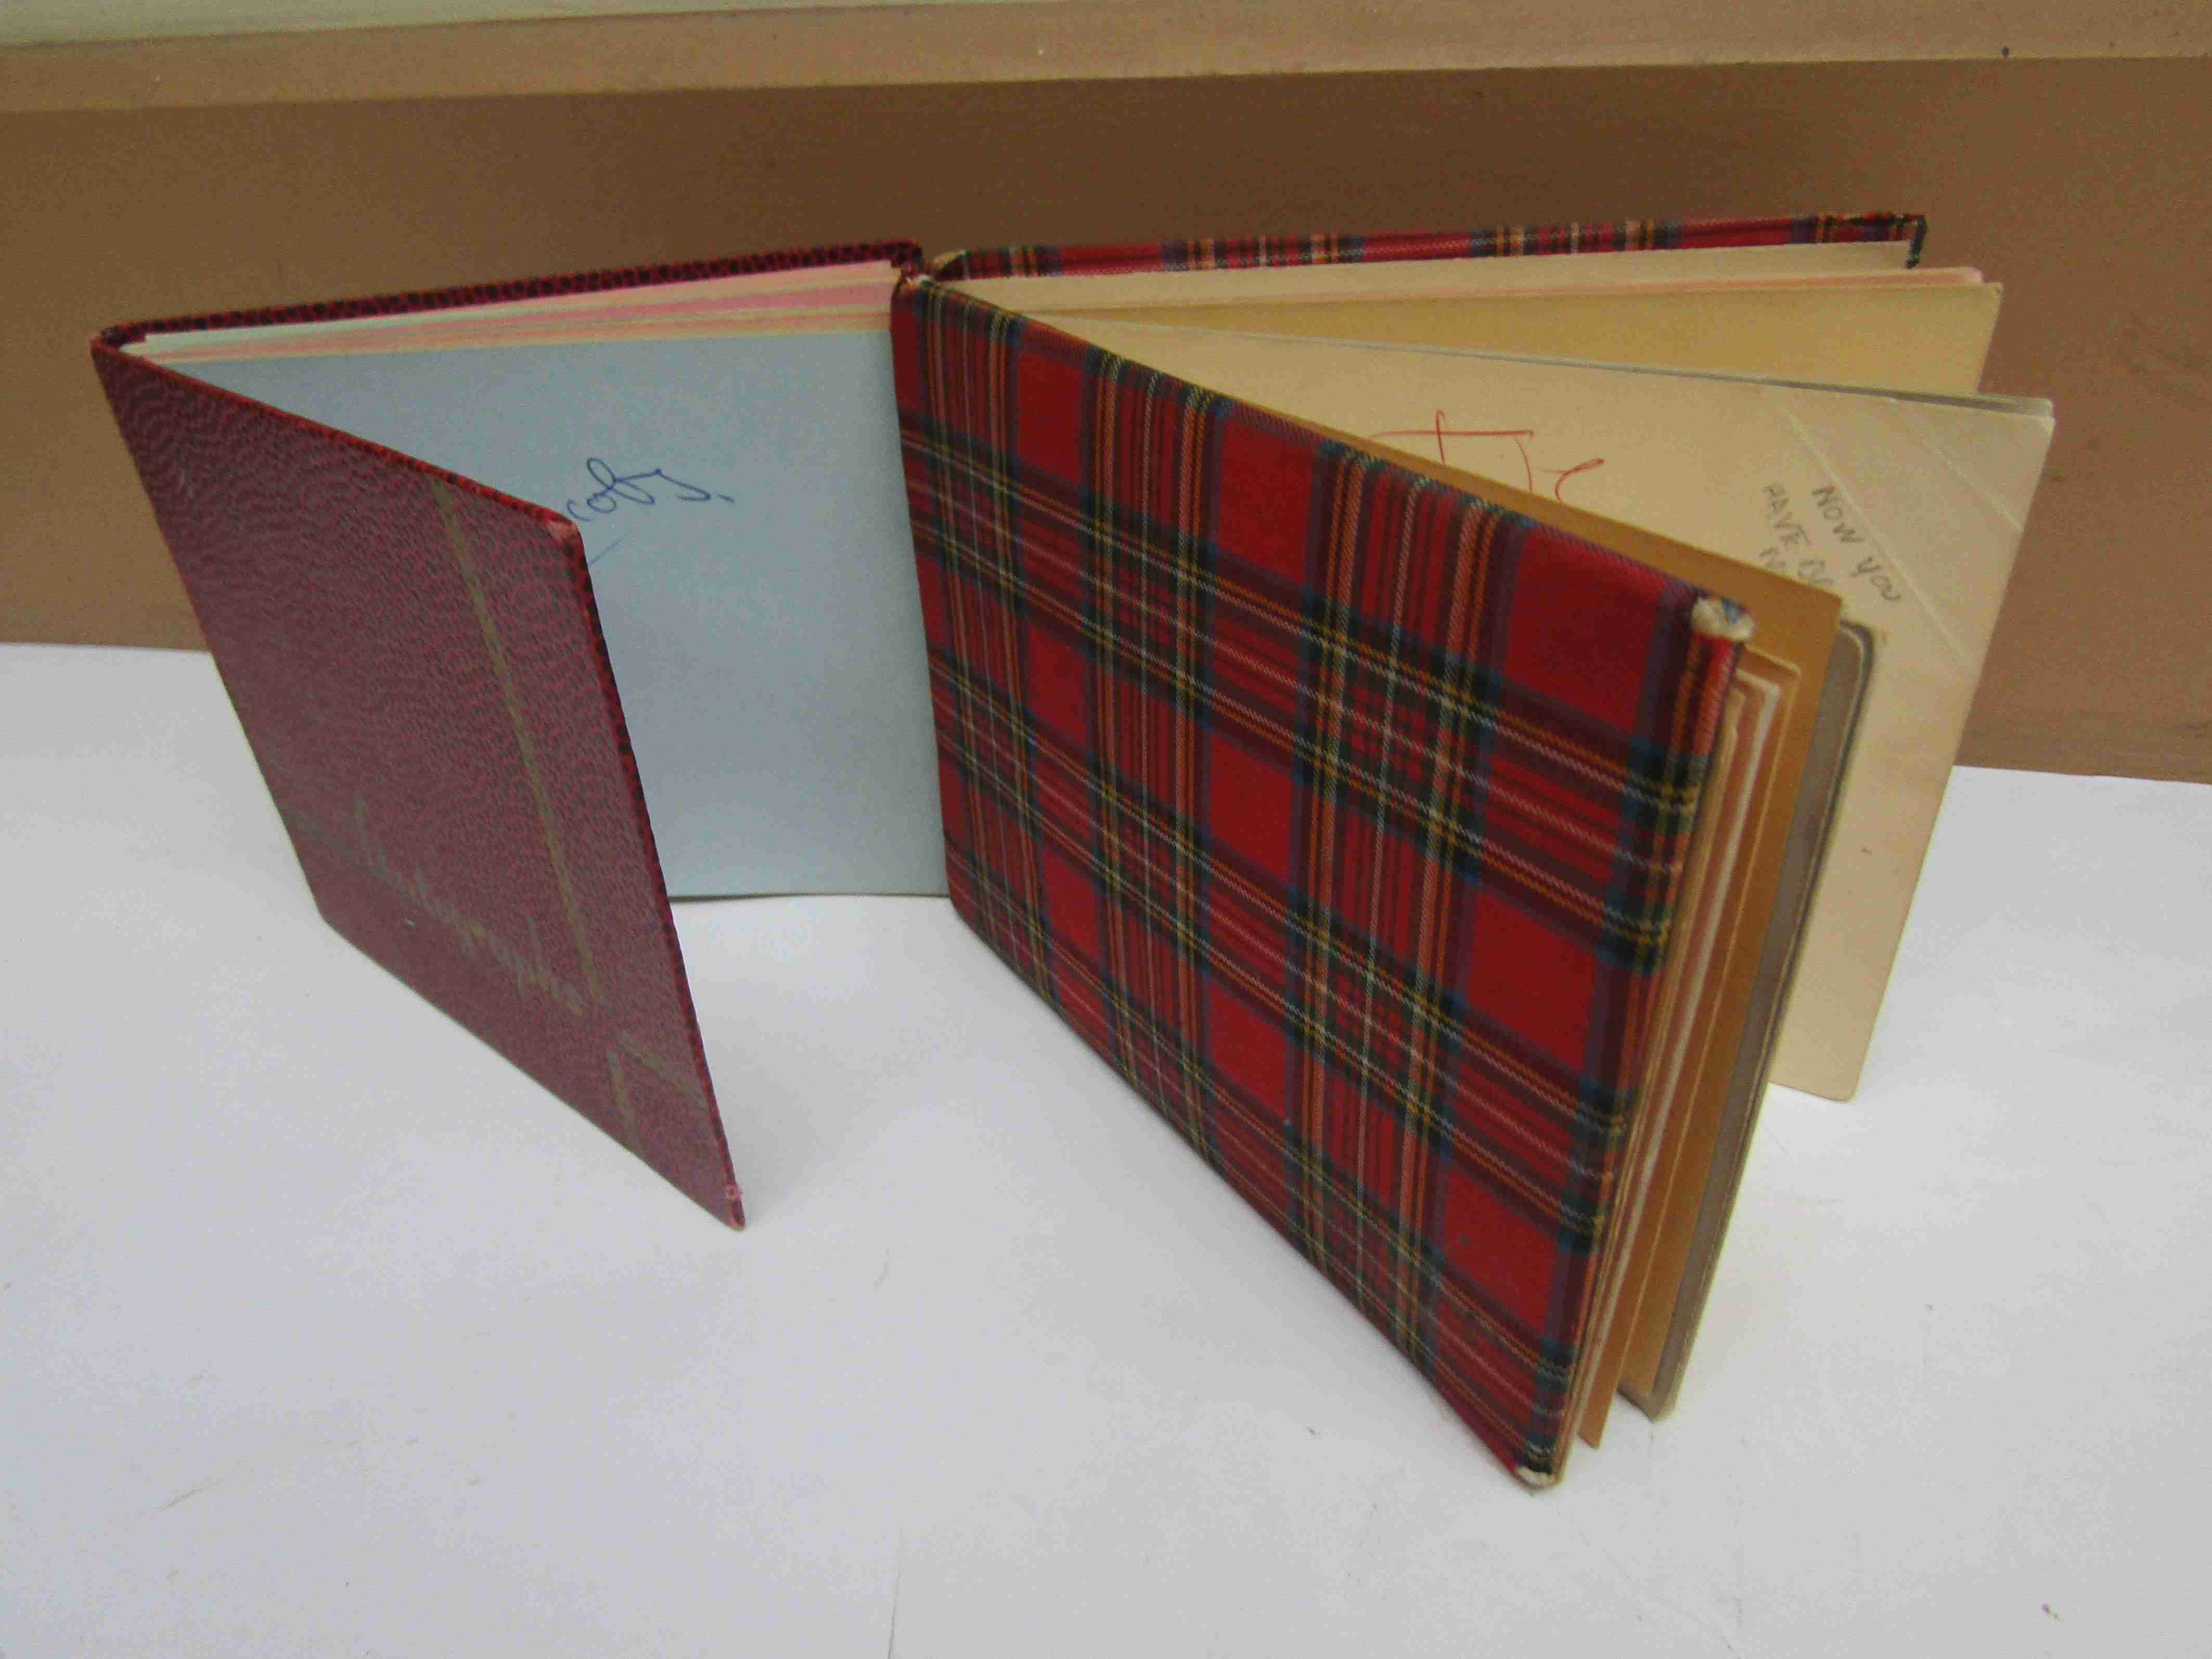 Two 1950s/60s autograph books containing autographs by Benny Hill, Honor Blackman, Barbara Shelley,